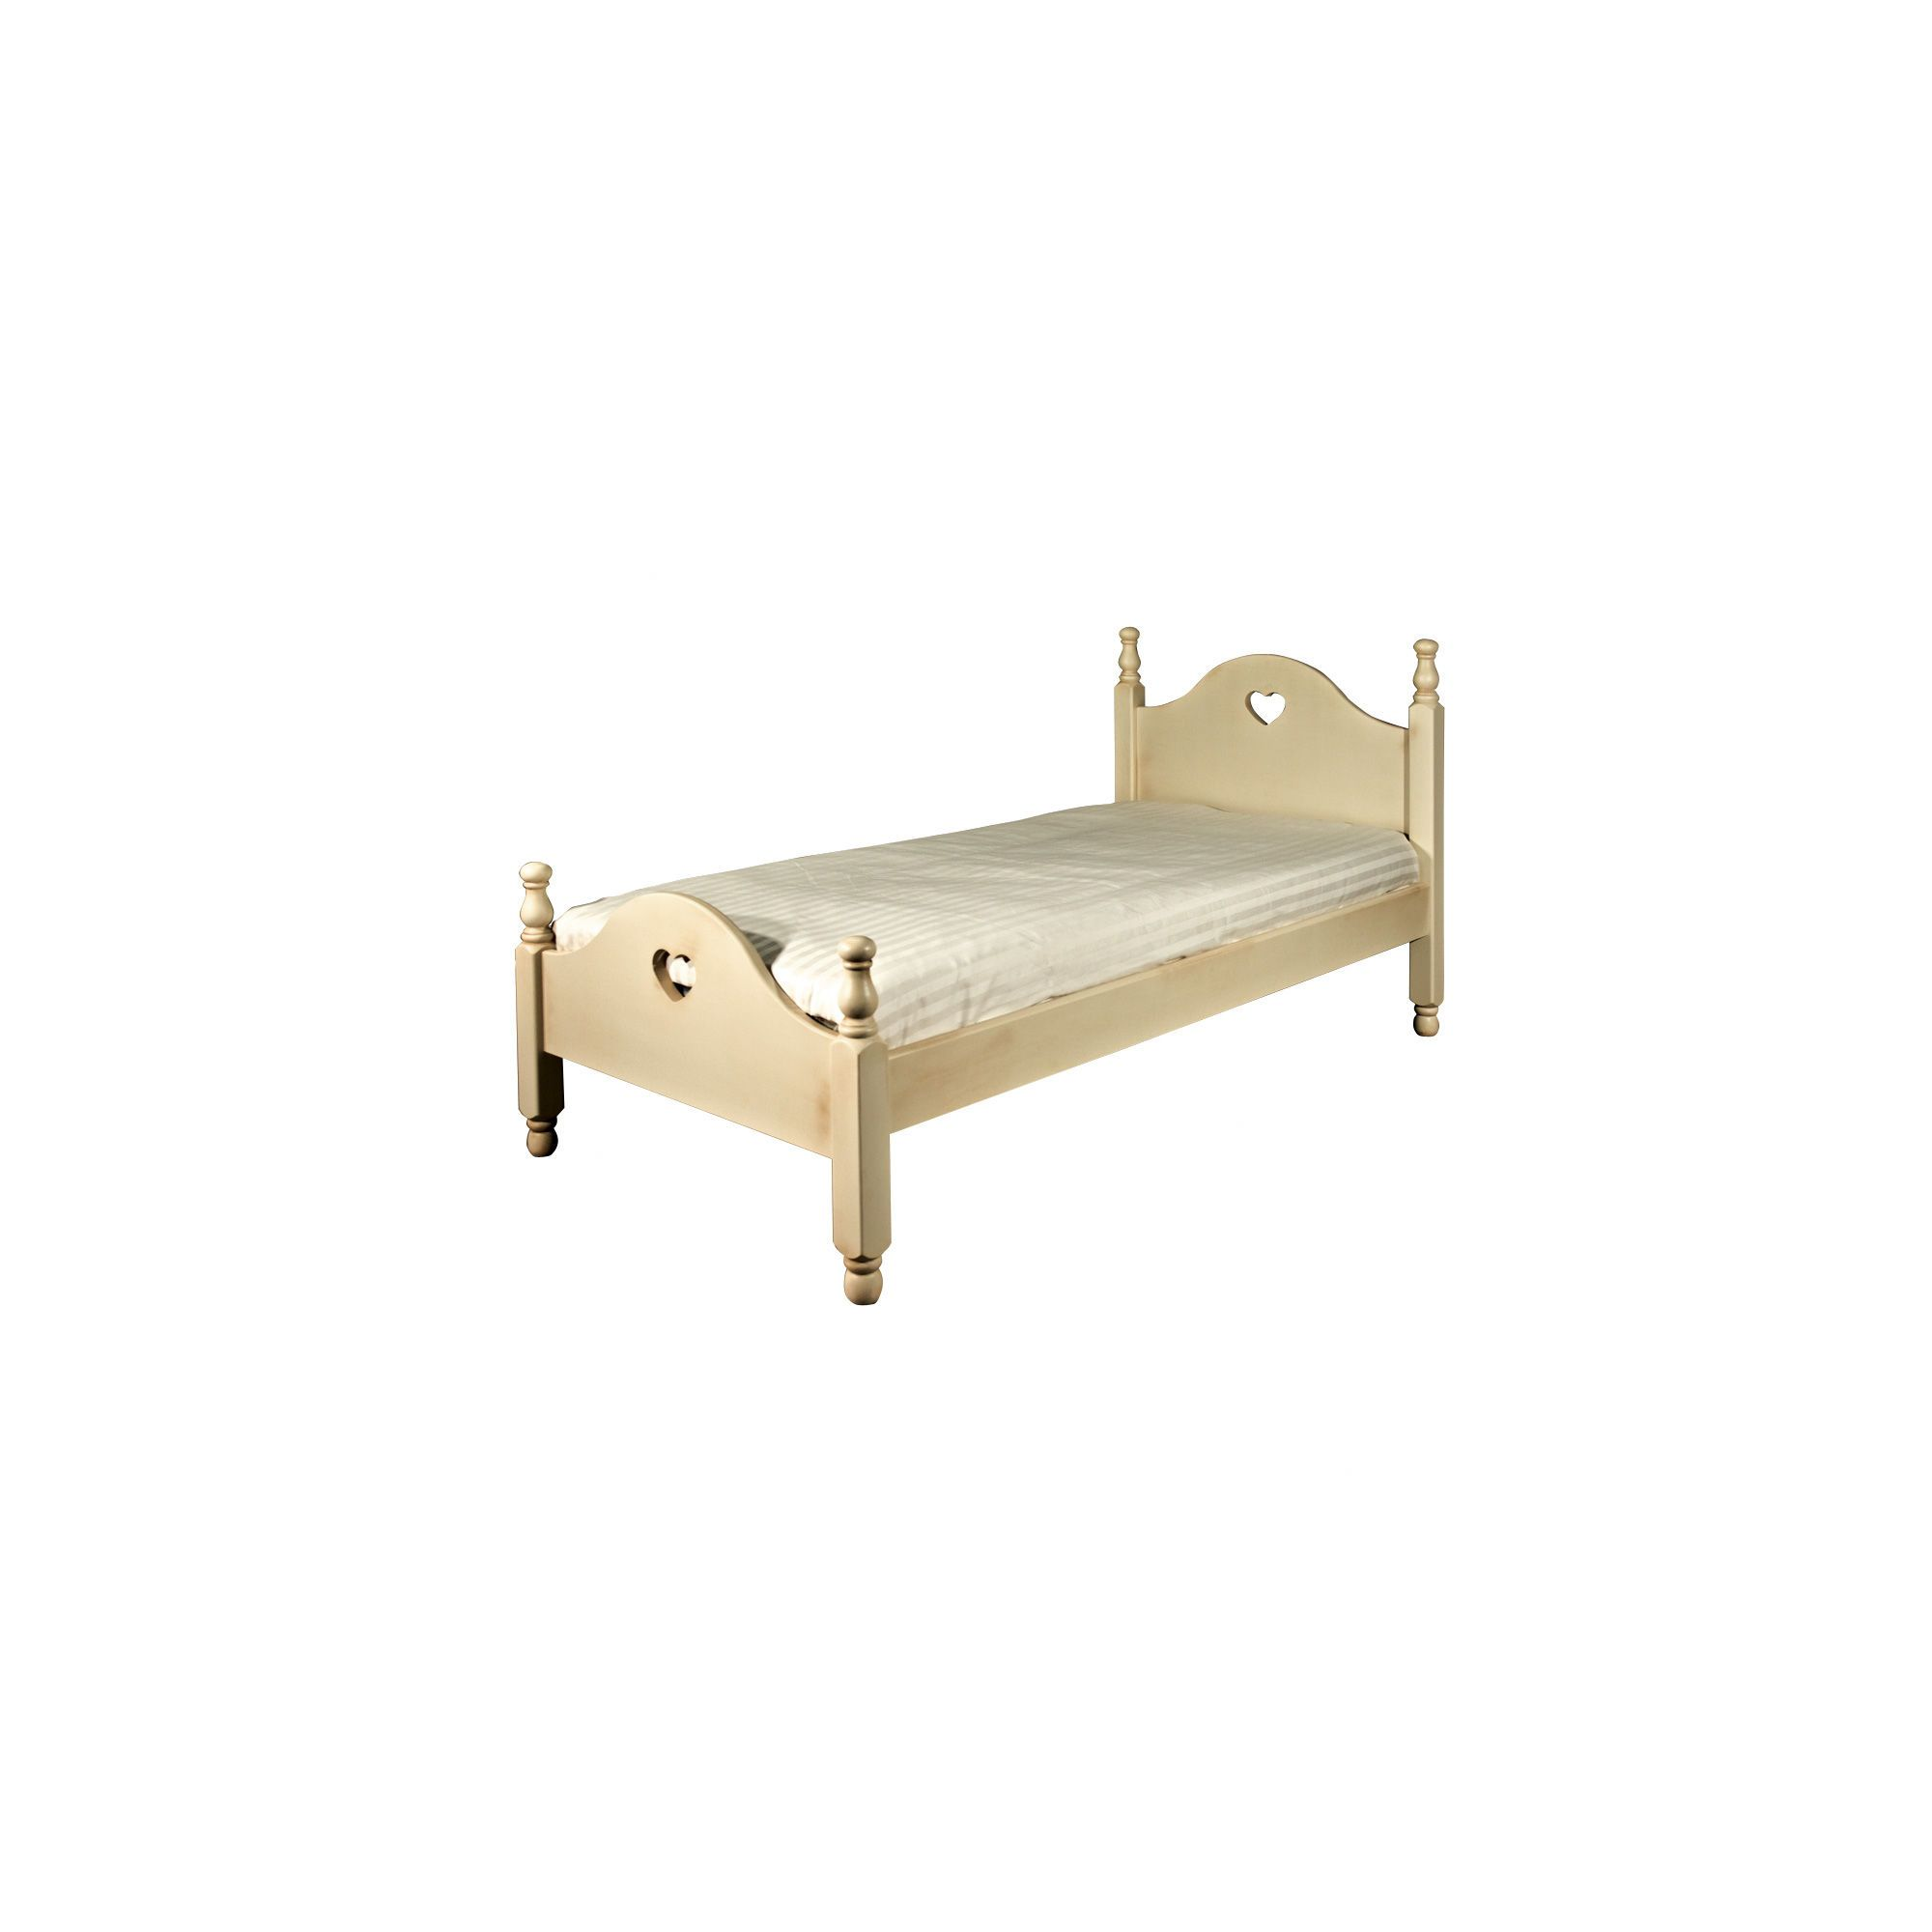 Alterton Furniture Danielle Single Bed Frame - Unfinished at Tesco Direct